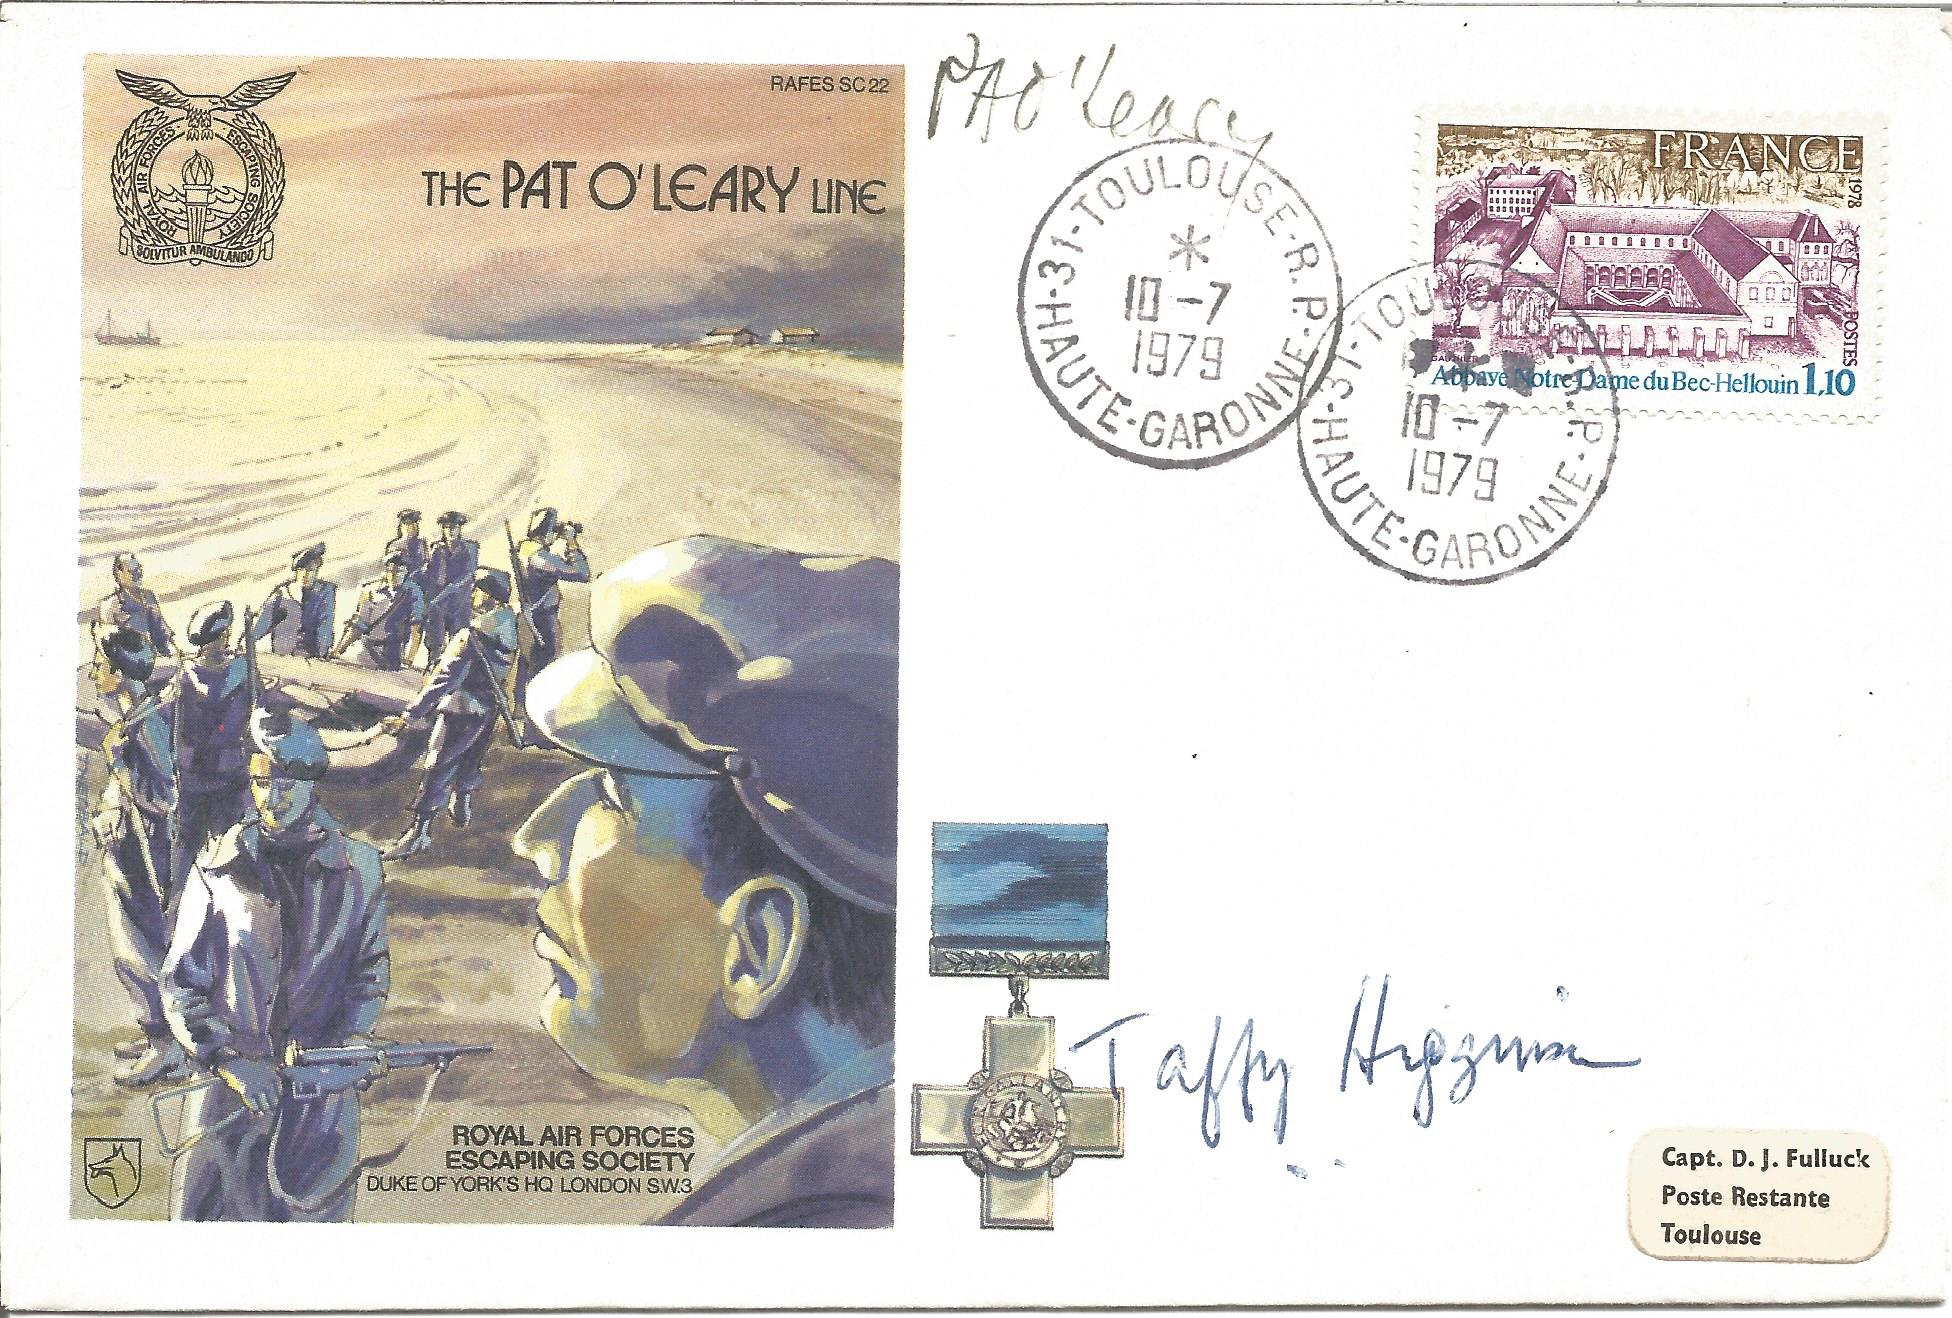 Pat O'Leary and Taffy Higginson signed The Pat O'Leary Line Cover No. 20 of 1060. Flown in